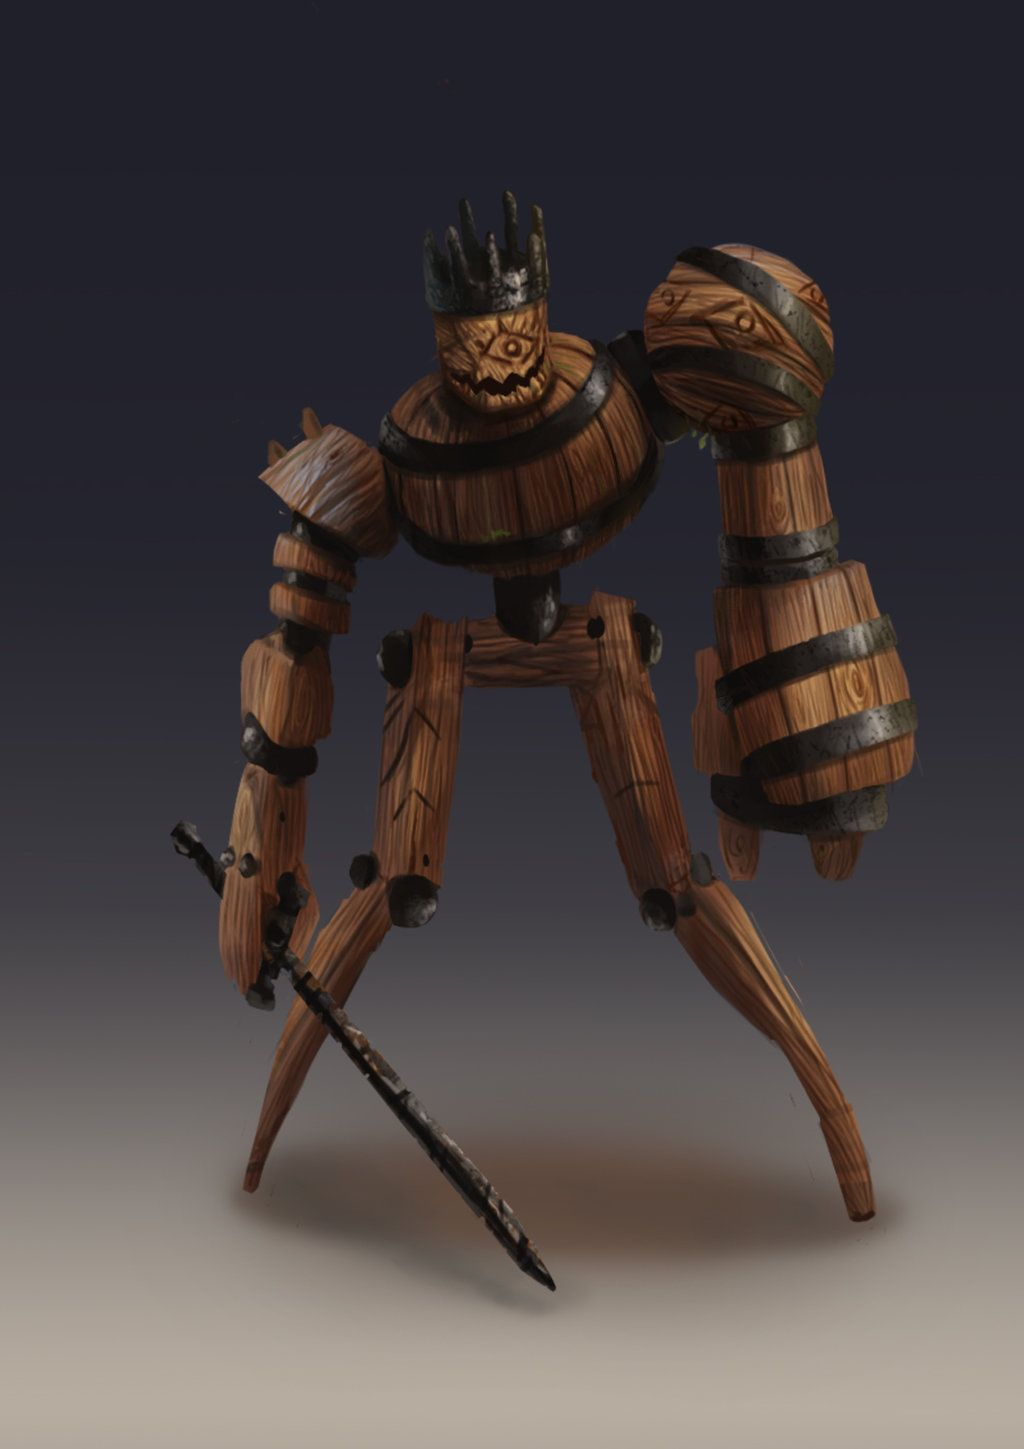 Wood Golem Google Search Chapter3 Rpg Dungeons Dragons Fantasy